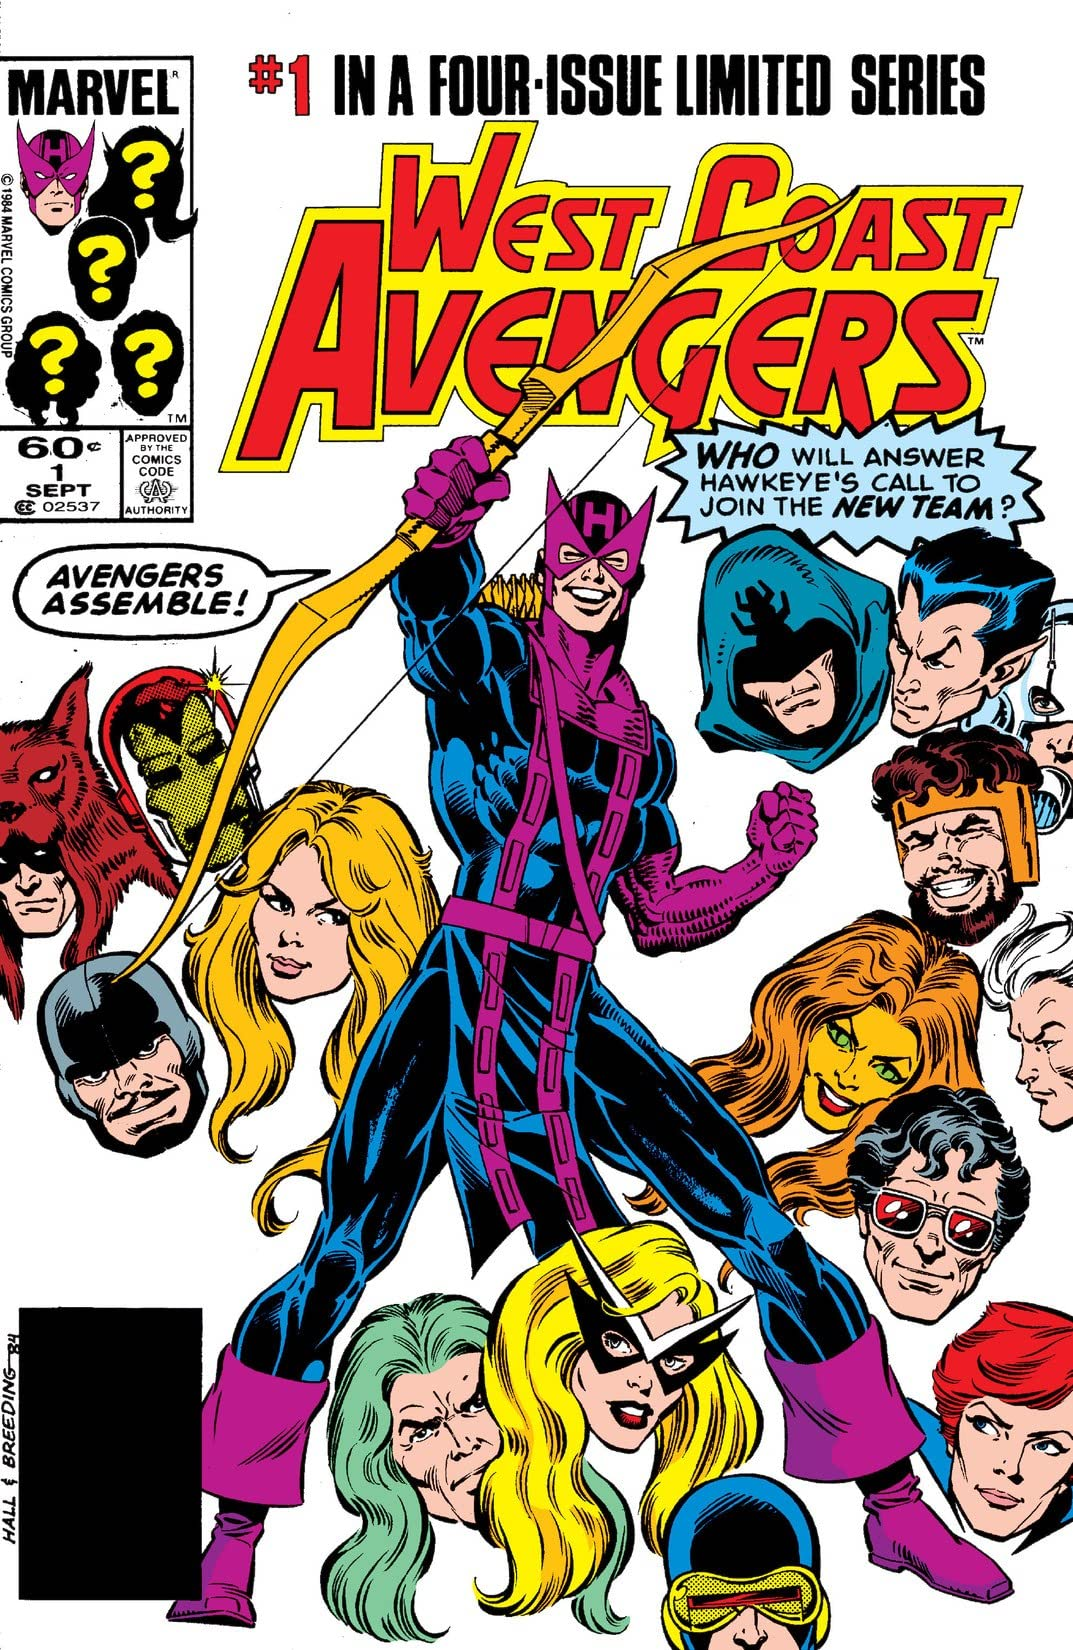 West Coast Avengers (1984) #1 (of 4)